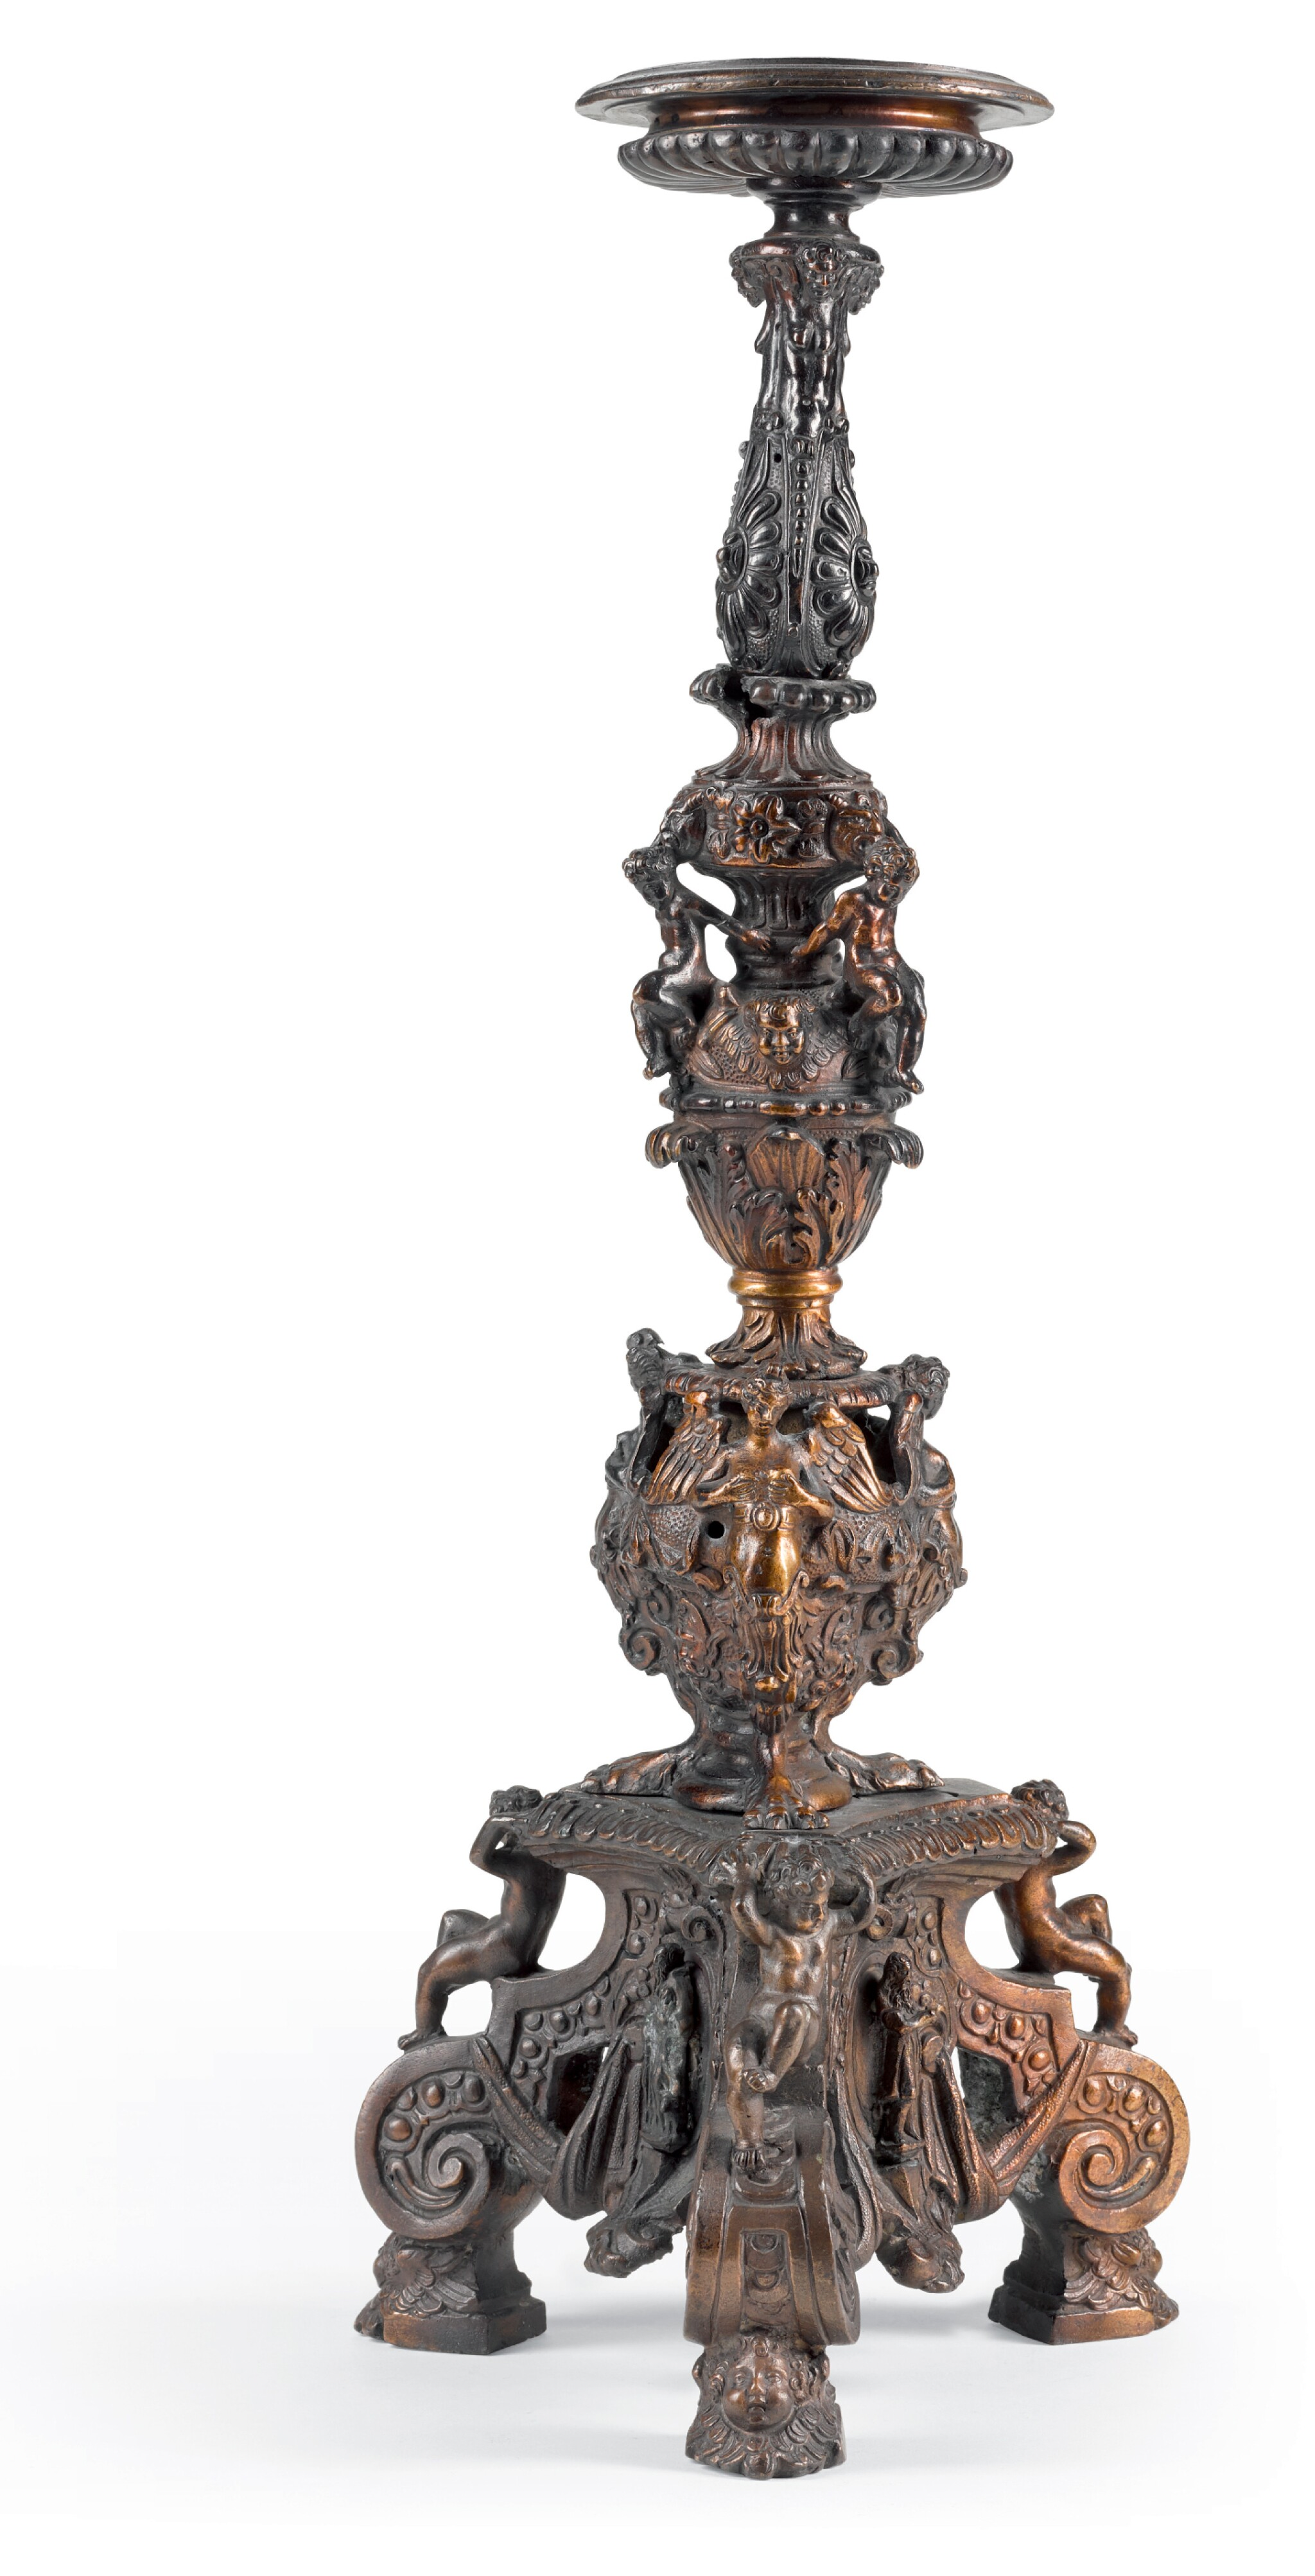 View 1 of Lot 56. ATTRIBUTED TO THE WORKSHOP OF NICCOLÒ ROCCATAGLIATA (FL. 1593-1636) OR HIS SON SEBASTIANO NICOLINI  (ACTIVE AFTER 1614), ITALIAN, VENICE, 17TH CENTURY | CANDLESTICK   .